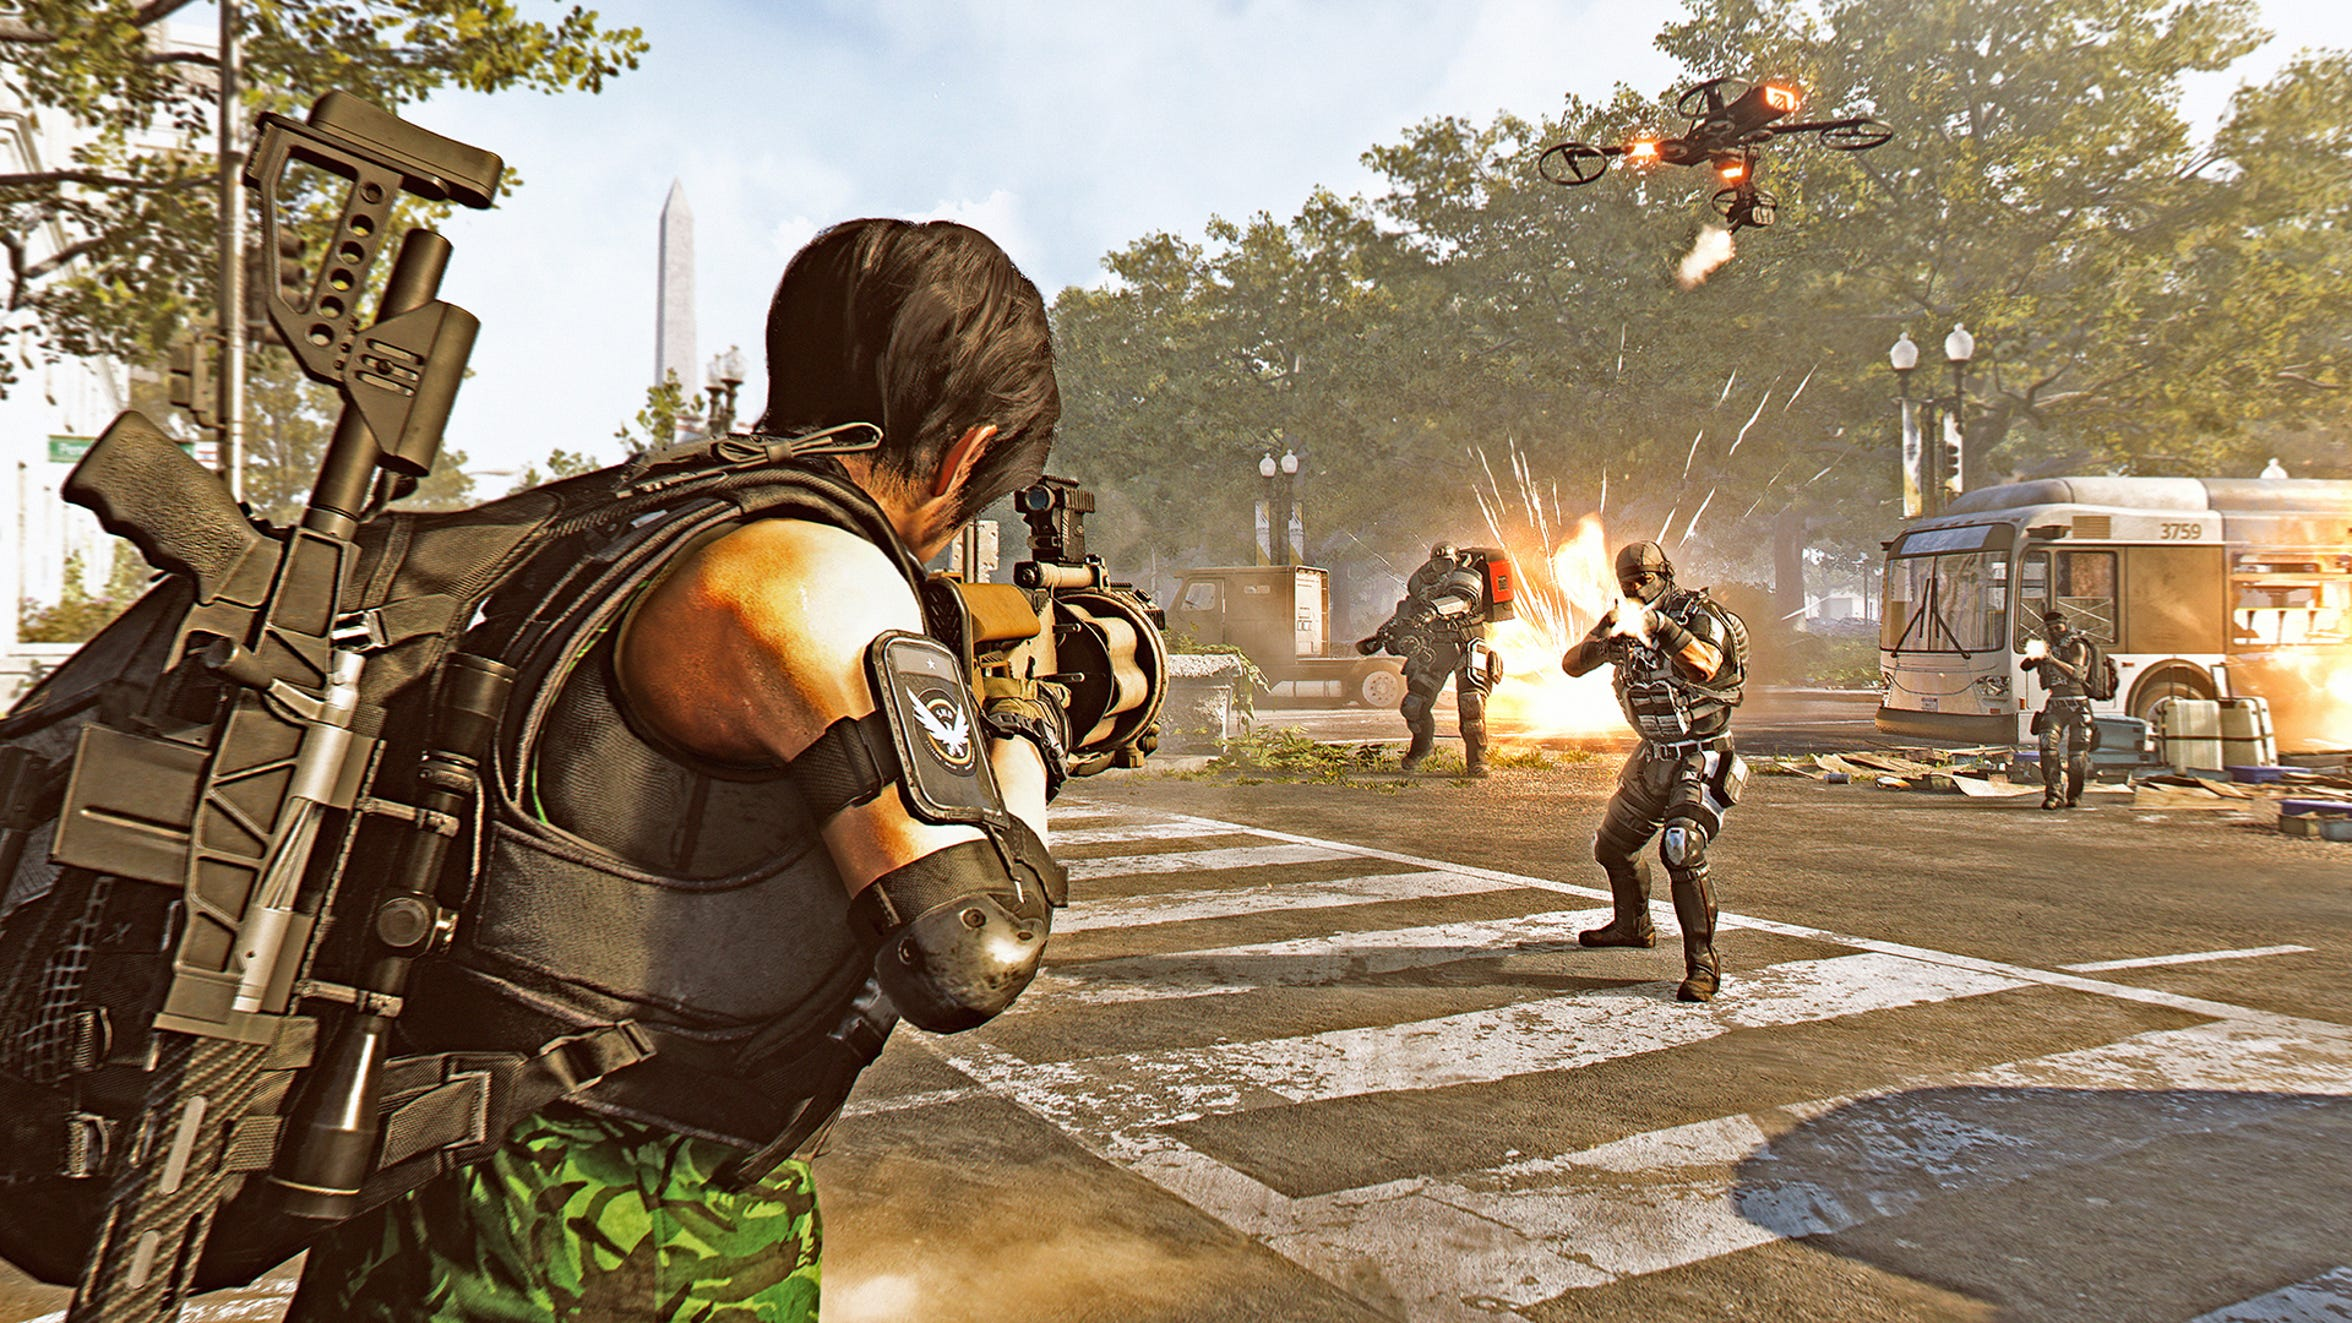 Tom Clancy's The Division 2 review: Draining the swamp | Technobubble